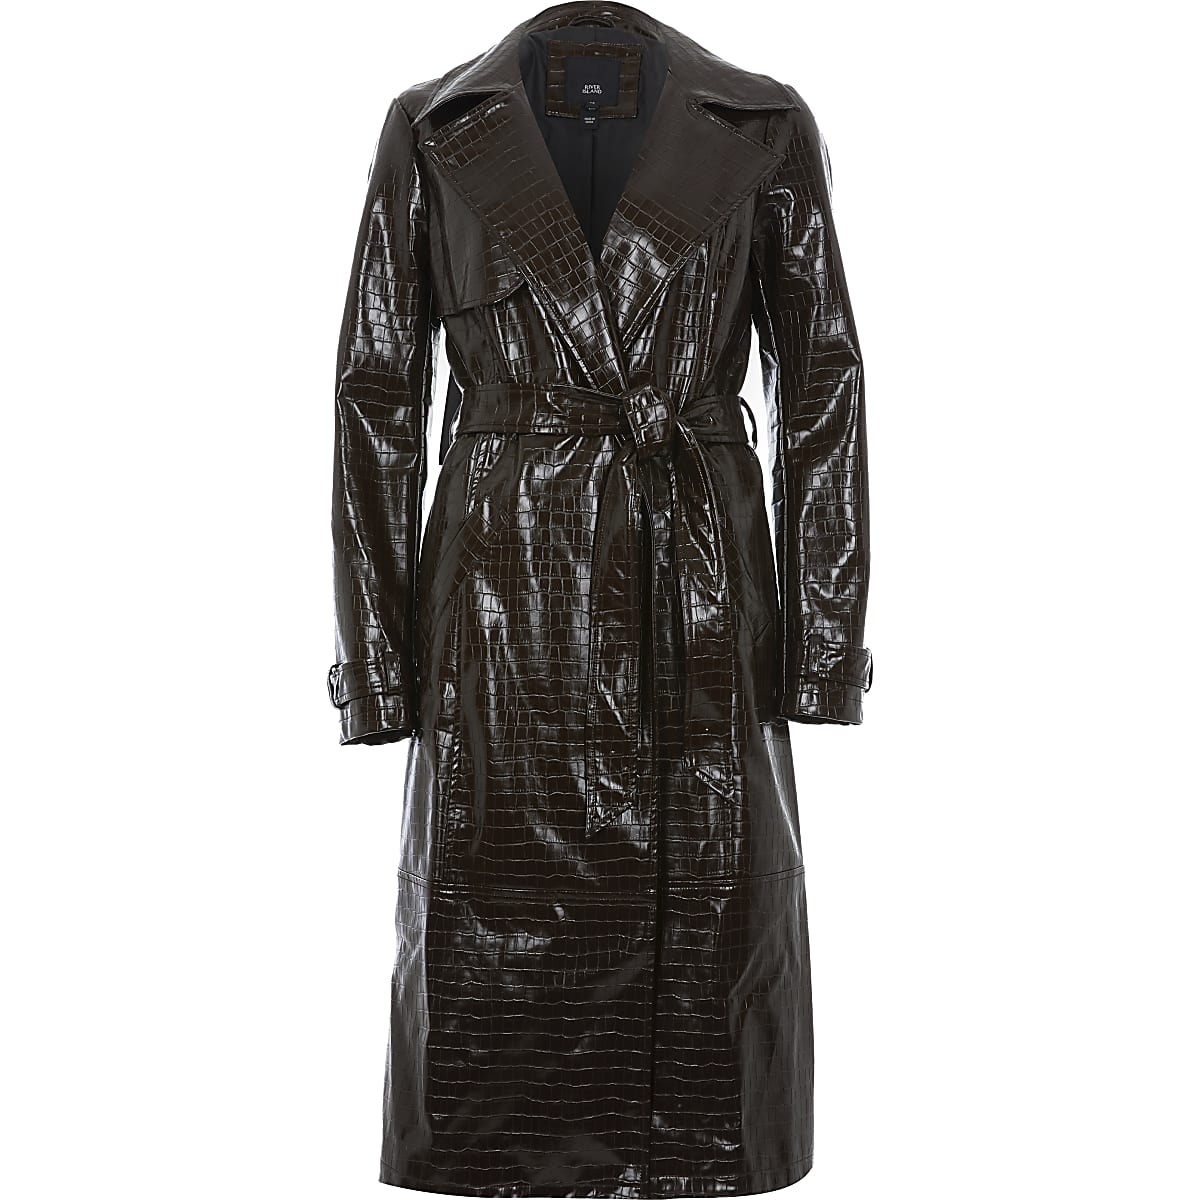 64a147d54 Brown croc embossed belted trench coat